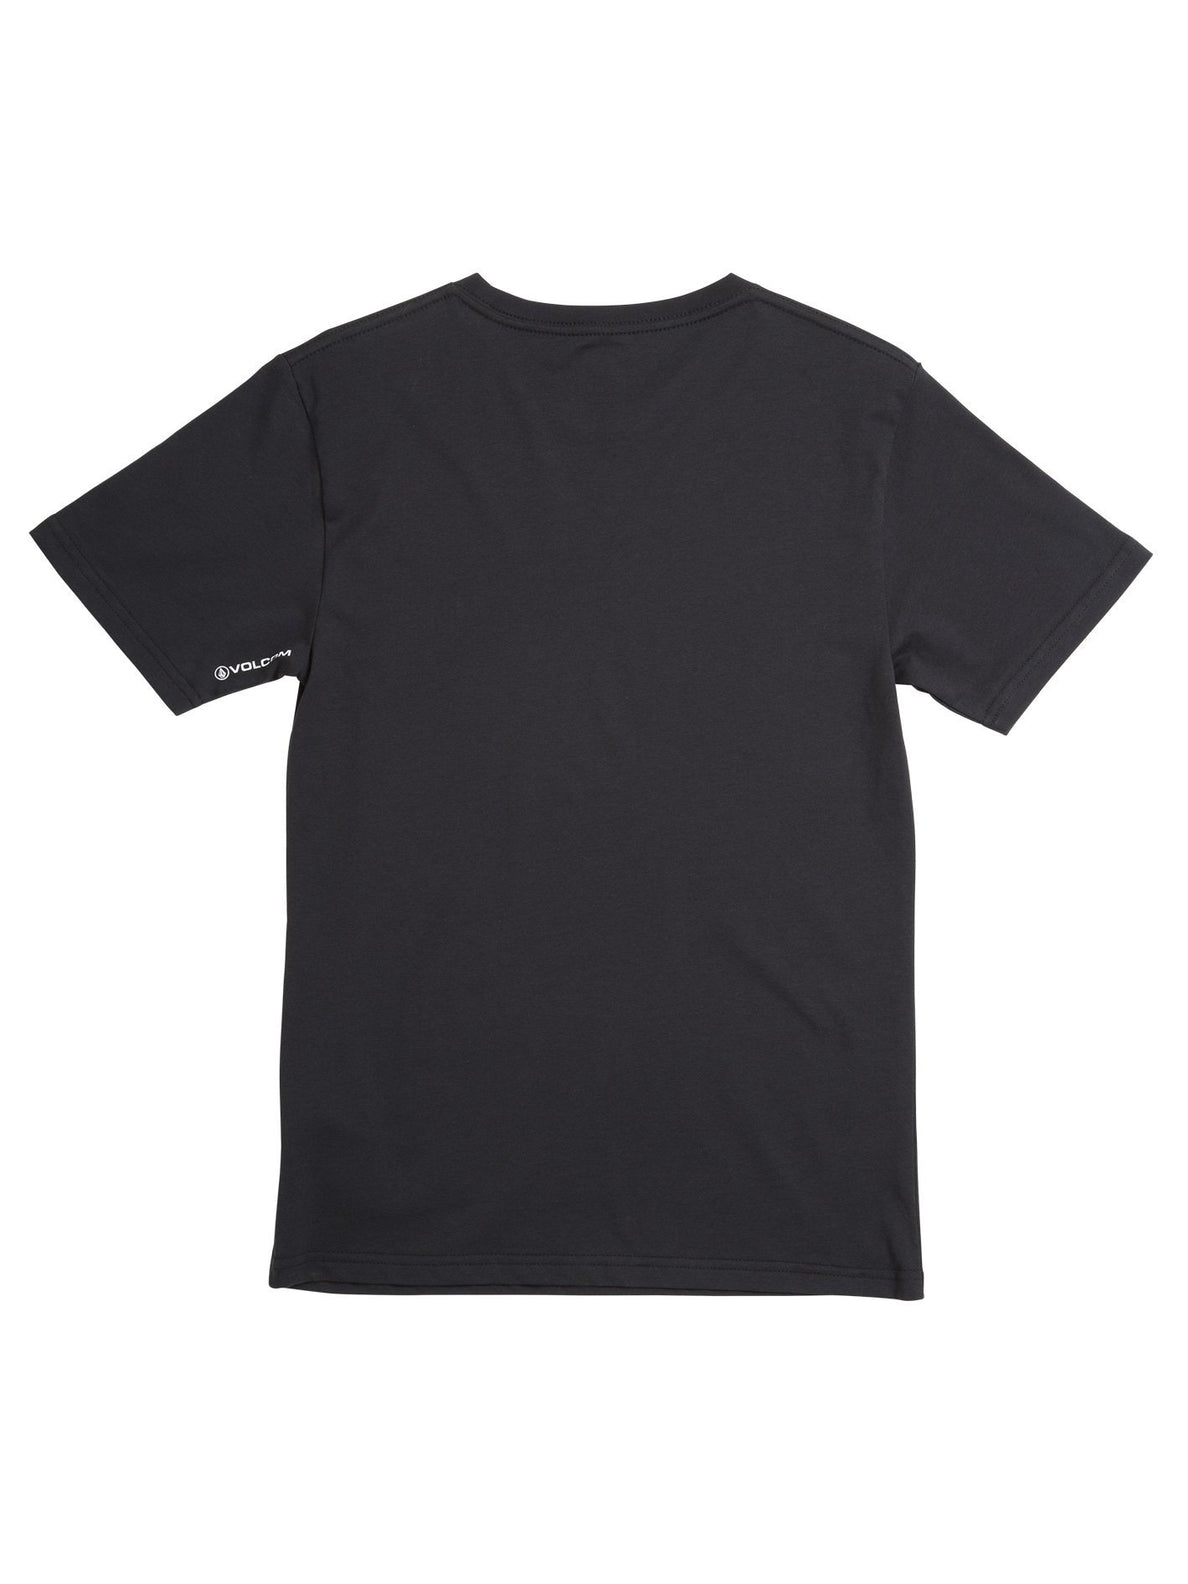 T-shirt Check Wreck (Enfant) - Black